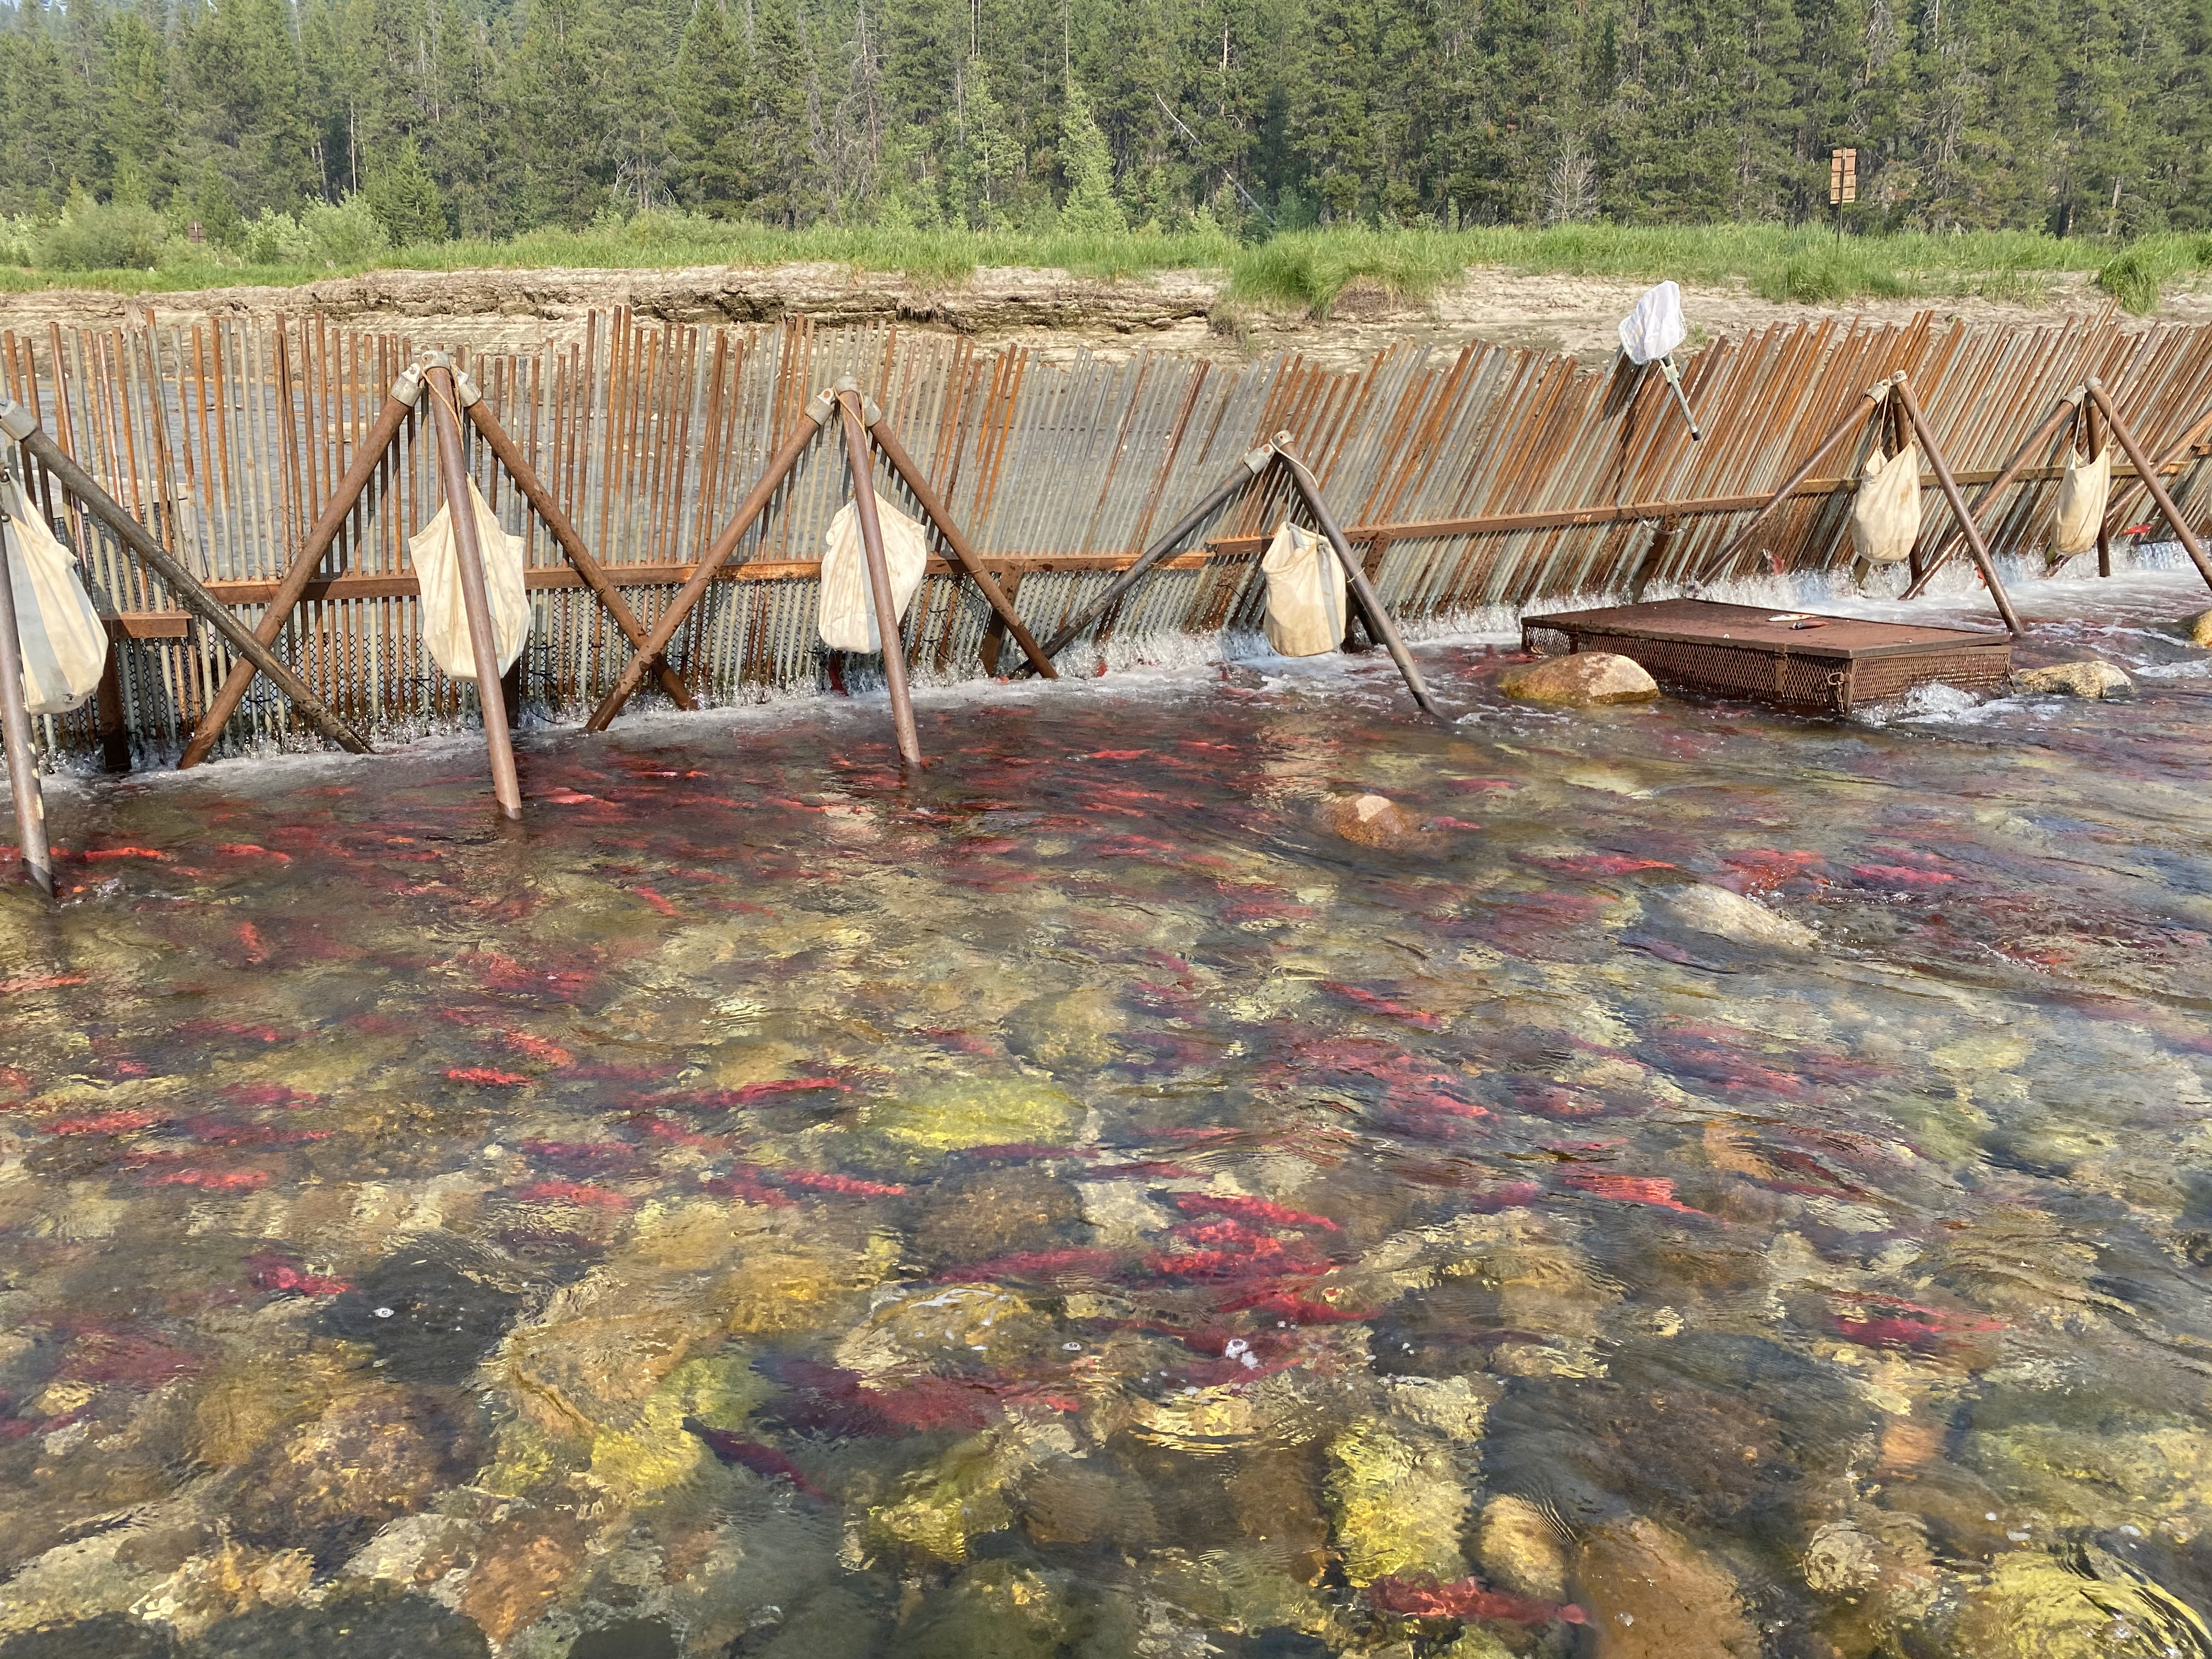 Deadwood weir with red fish